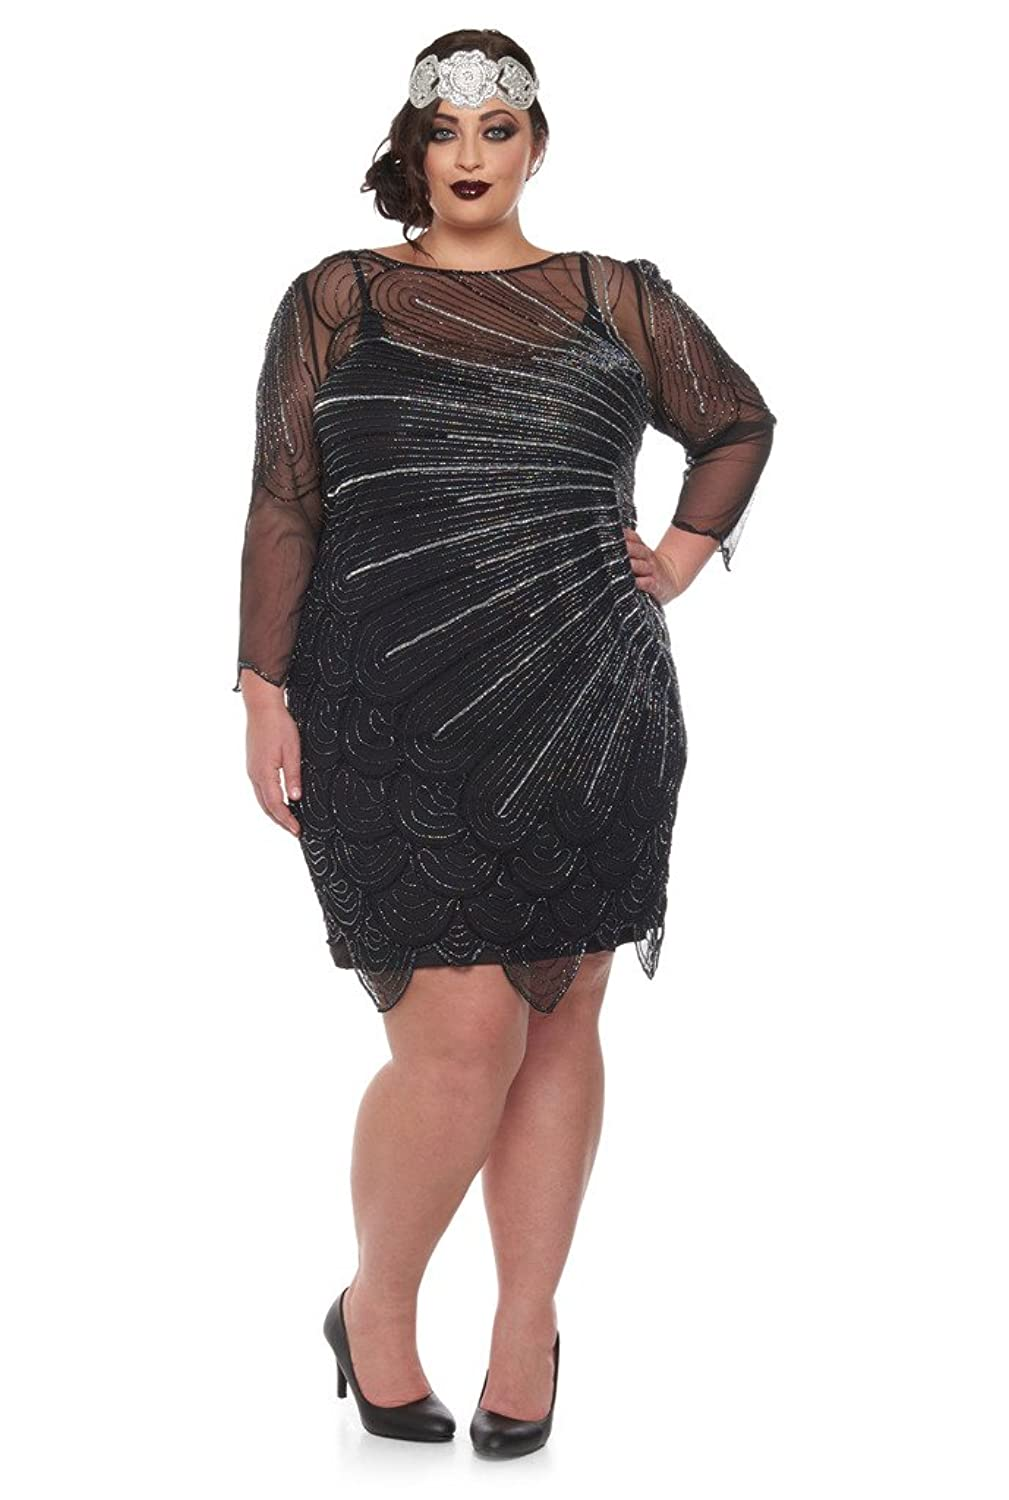 Flapper Dresses & Quality Flapper Costumes Catherine Vintage Inspired Flapper Dress in Black Silver $105.22 AT vintagedancer.com